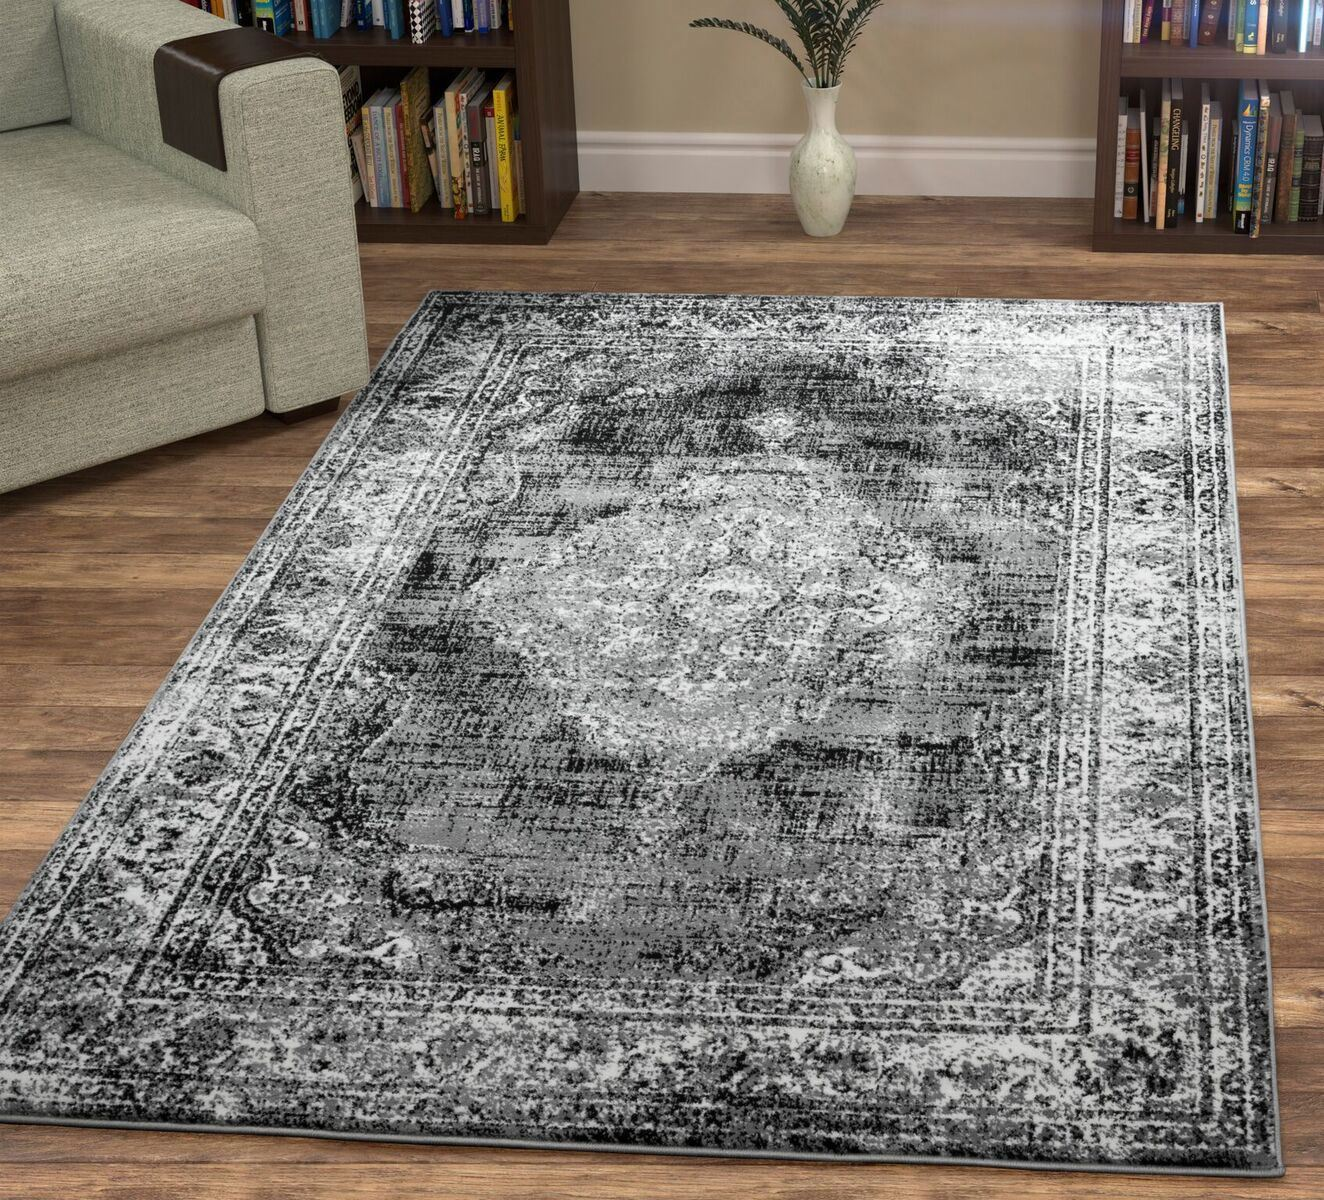 Large Luxury Area Rugs Dark grau Geometric Persian Oriental Oriental Oriental Rugs Bedroom Carpets 1a7d14